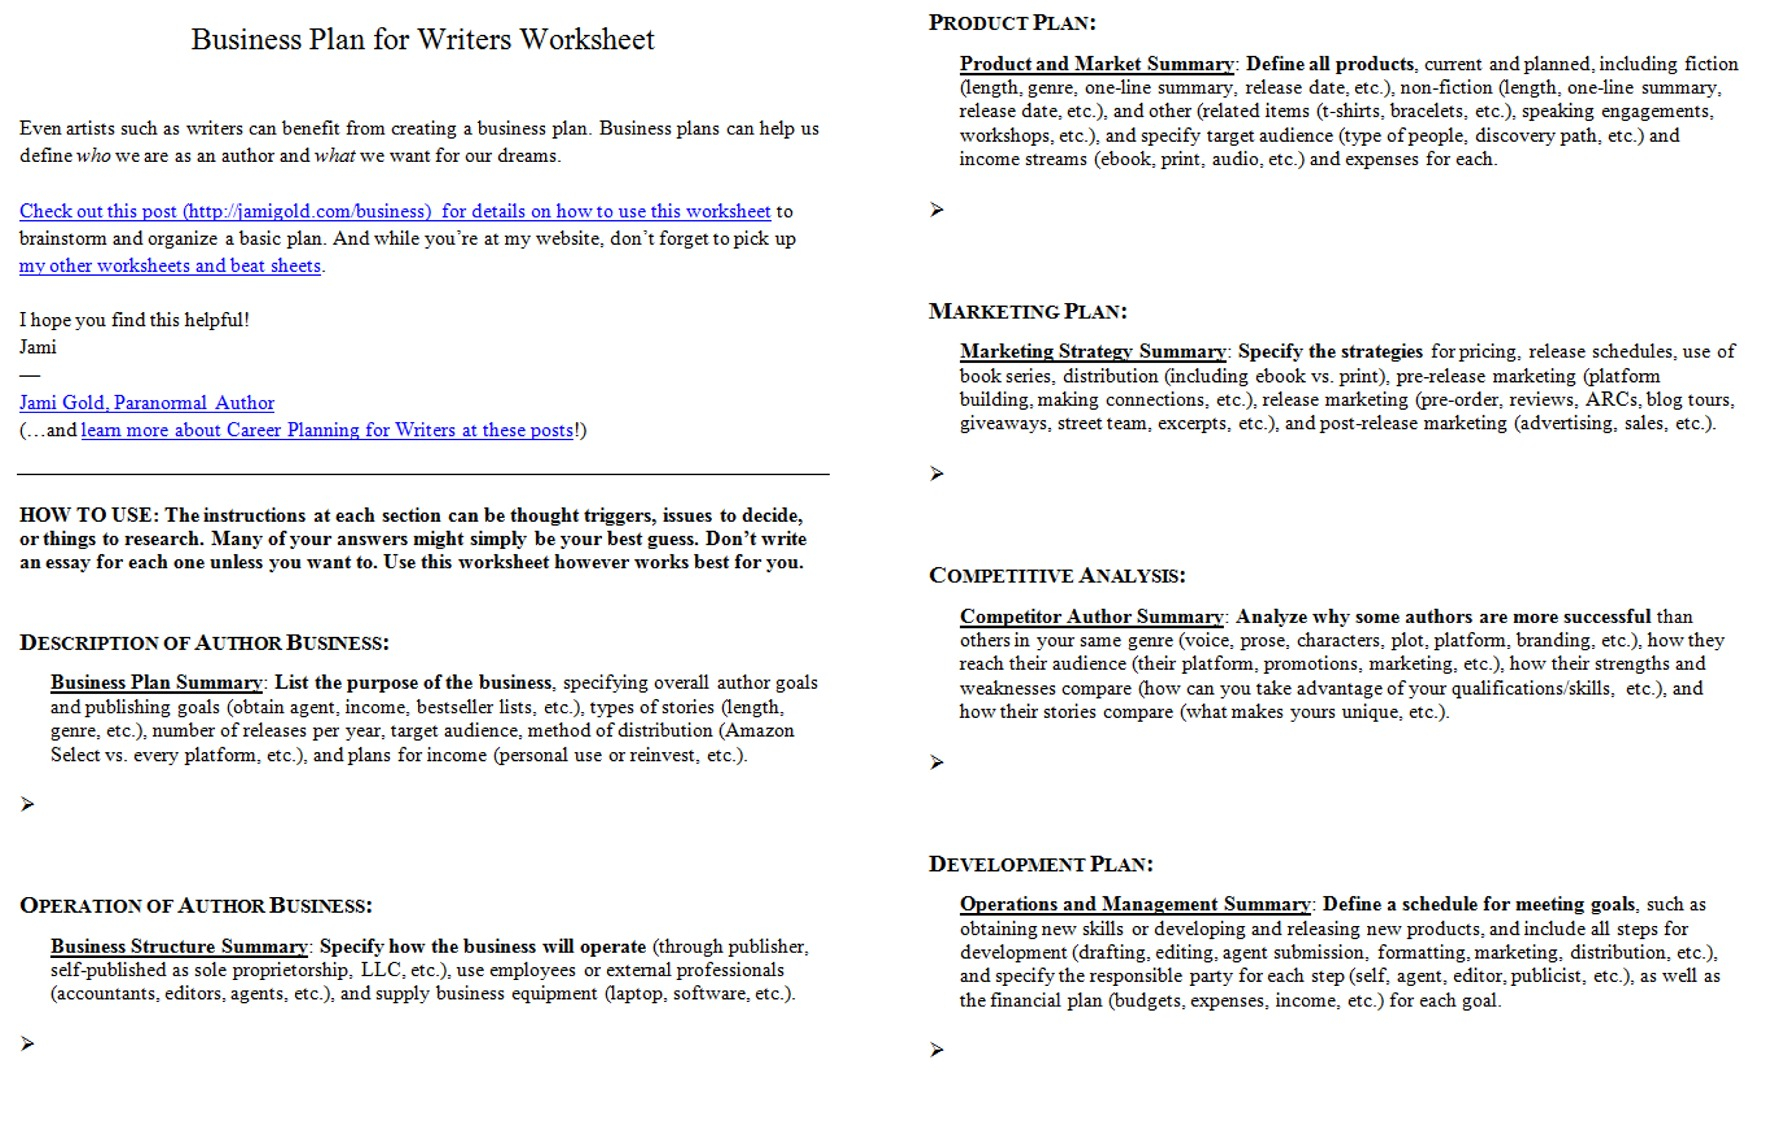 Weirdmailus  Unusual Worksheets For Writers  Jami Gold Paranormal Author With Luxury Screen Shot Of Both Pages Of The Business Plan For Writers Worksheet With Endearing Scholastic Math Worksheets Also R Worksheet In Addition Petty Cash Worksheet And Solving Systems Of Equations By Elimination Worksheets As Well As Spanish Worksheets Middle School Additionally Identifying Variables Worksheet Key From Jamigoldcom With Weirdmailus  Luxury Worksheets For Writers  Jami Gold Paranormal Author With Endearing Screen Shot Of Both Pages Of The Business Plan For Writers Worksheet And Unusual Scholastic Math Worksheets Also R Worksheet In Addition Petty Cash Worksheet From Jamigoldcom